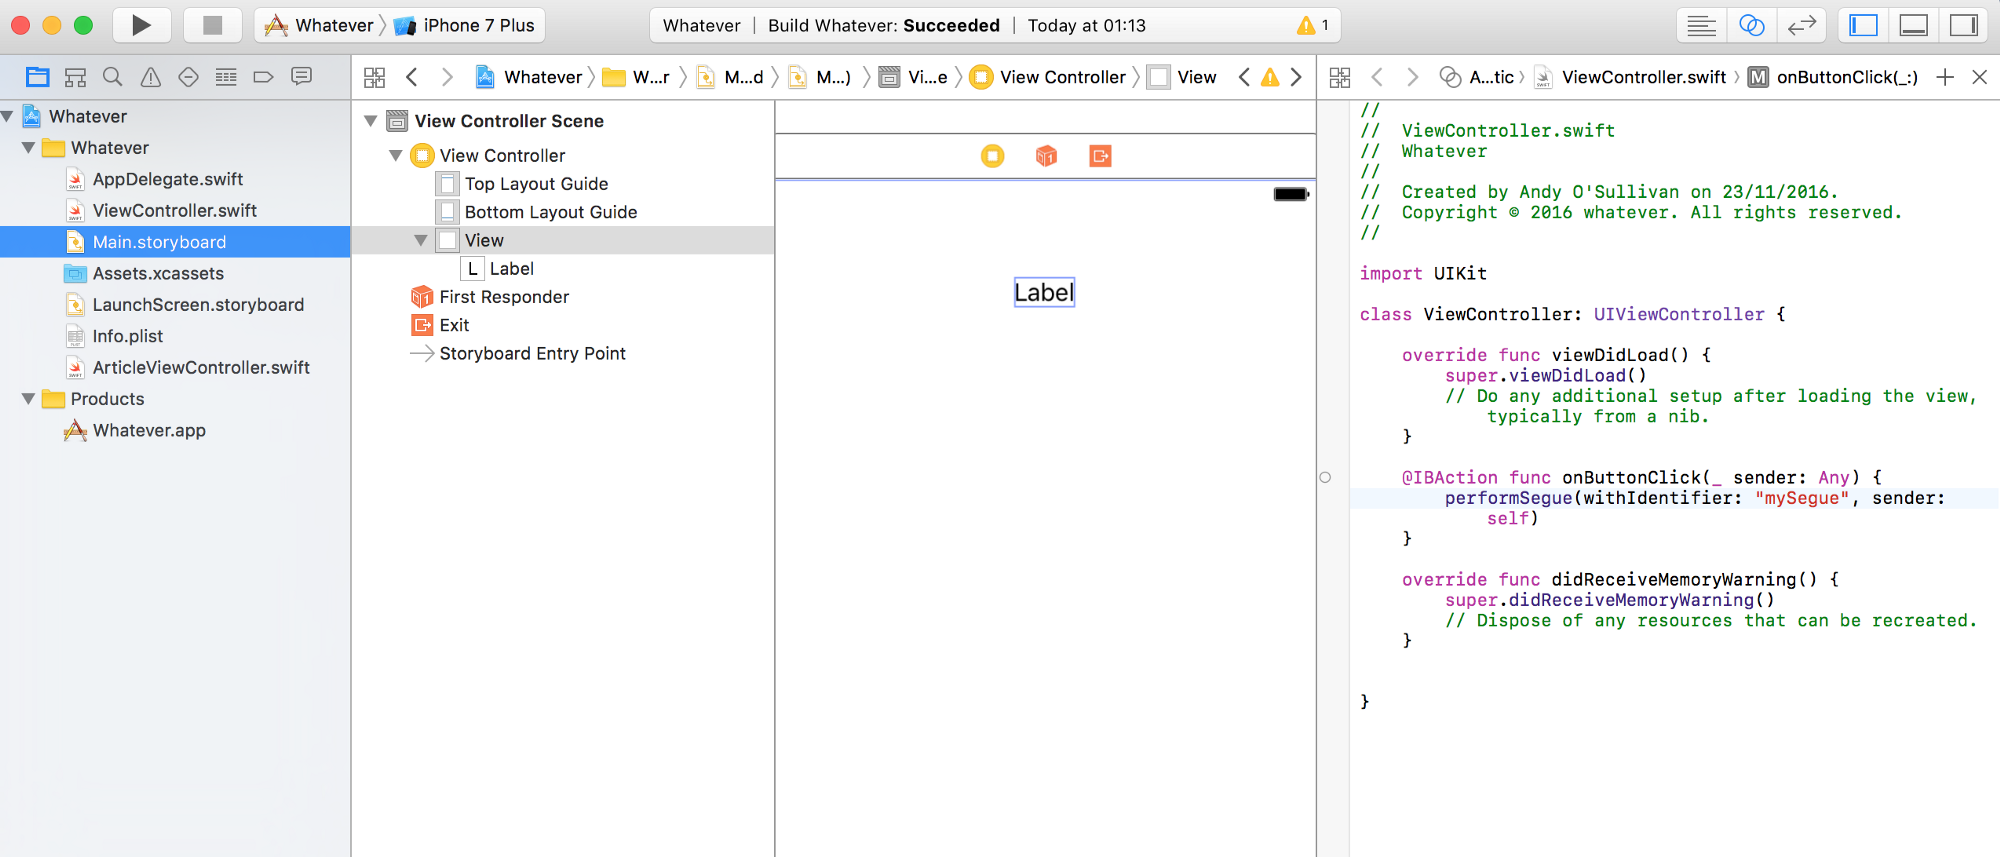 Beginners Guide To Xcode Ios 2 Appsandbiscuits How Build Whistle Responder View Storyboard And Code At Same Time